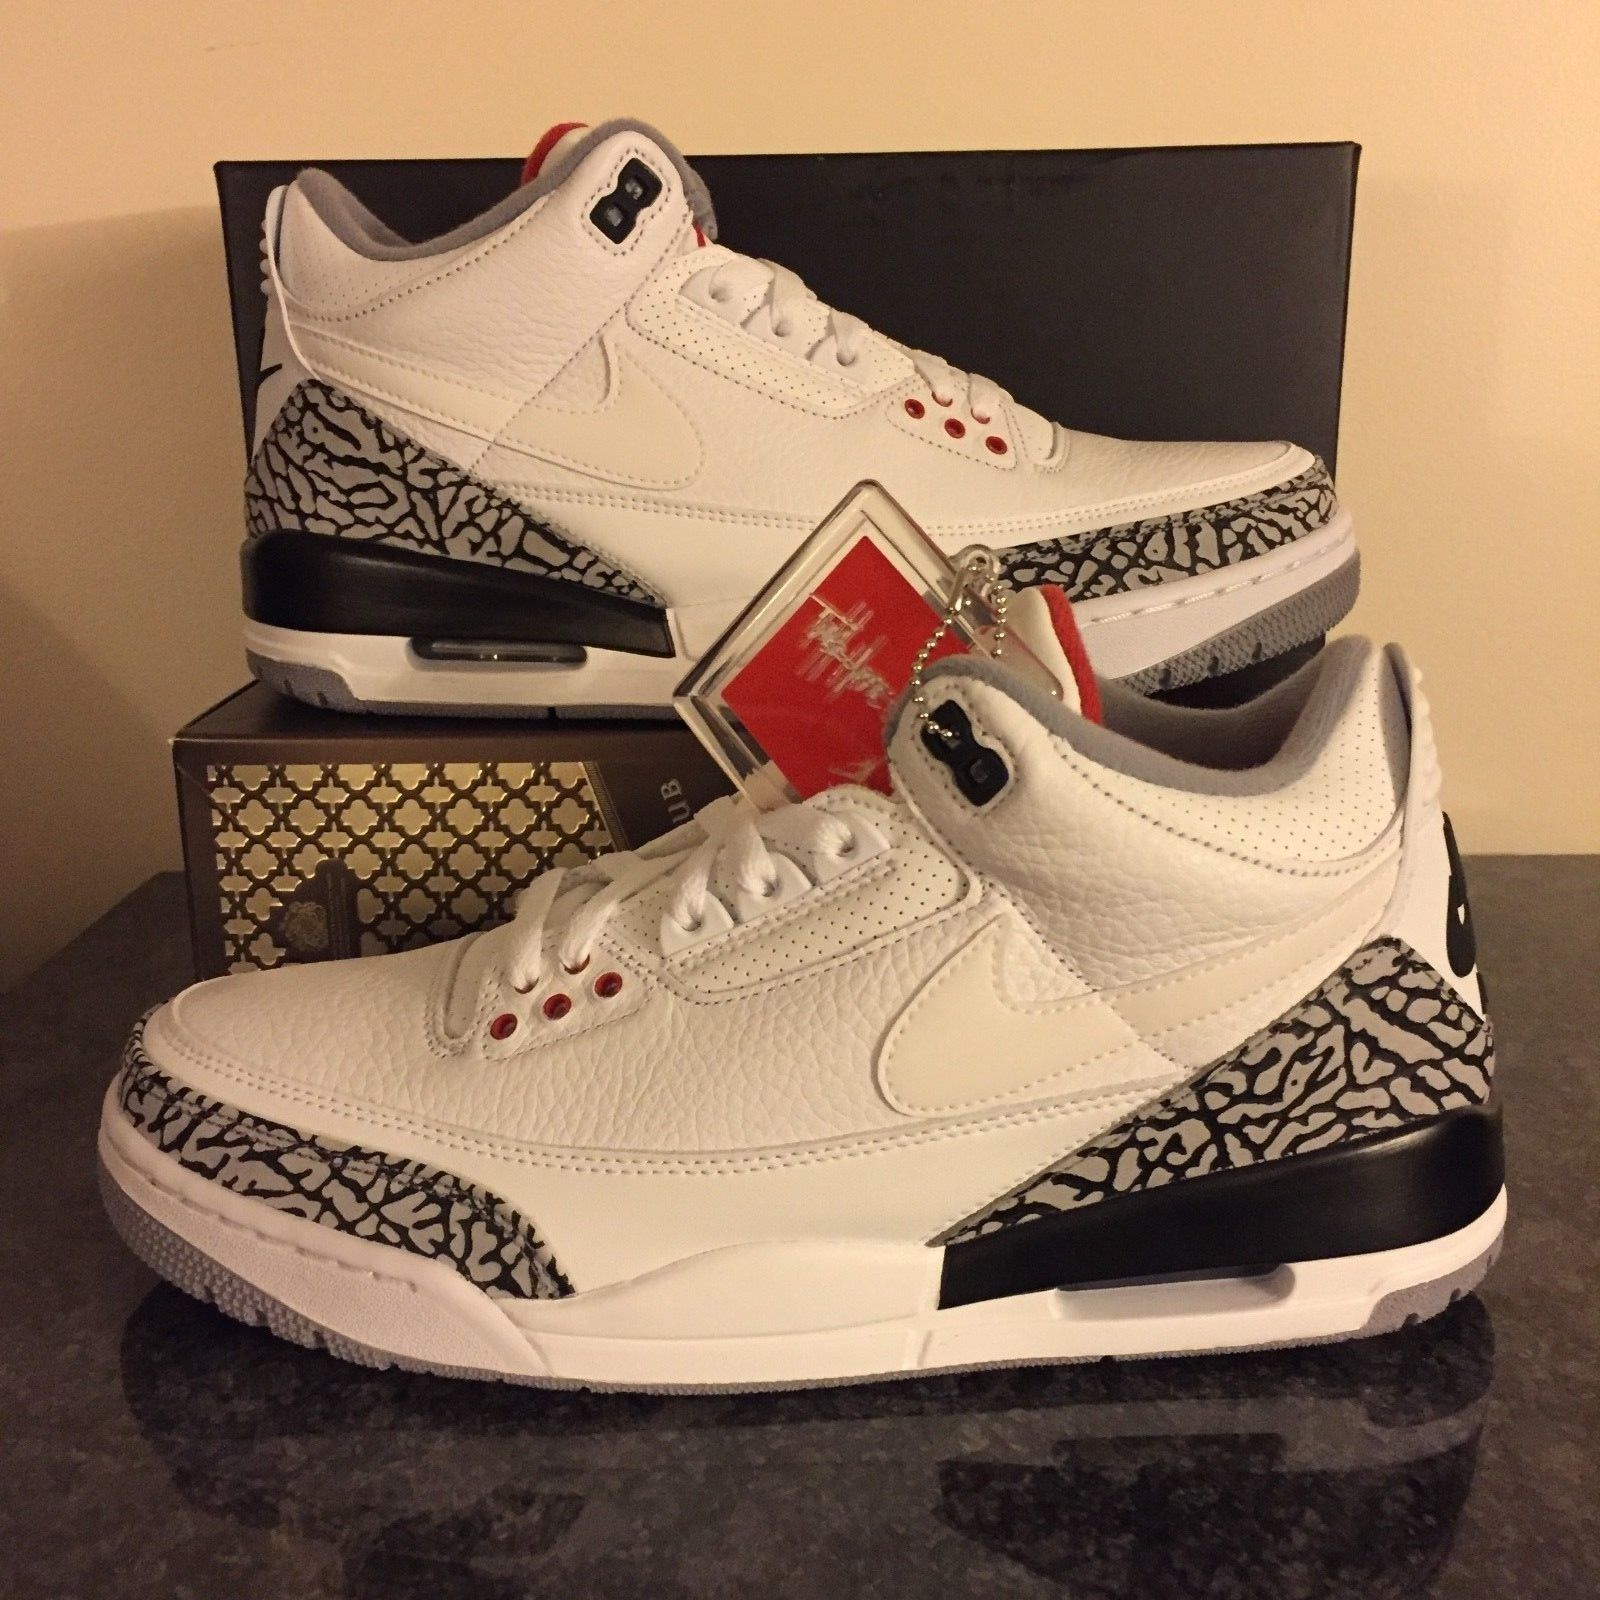 33a90ae783d1 100% Authentic Air Jordan 3 JTH Justin Timberlake Tinker Hatfield 88 Super  Bowl